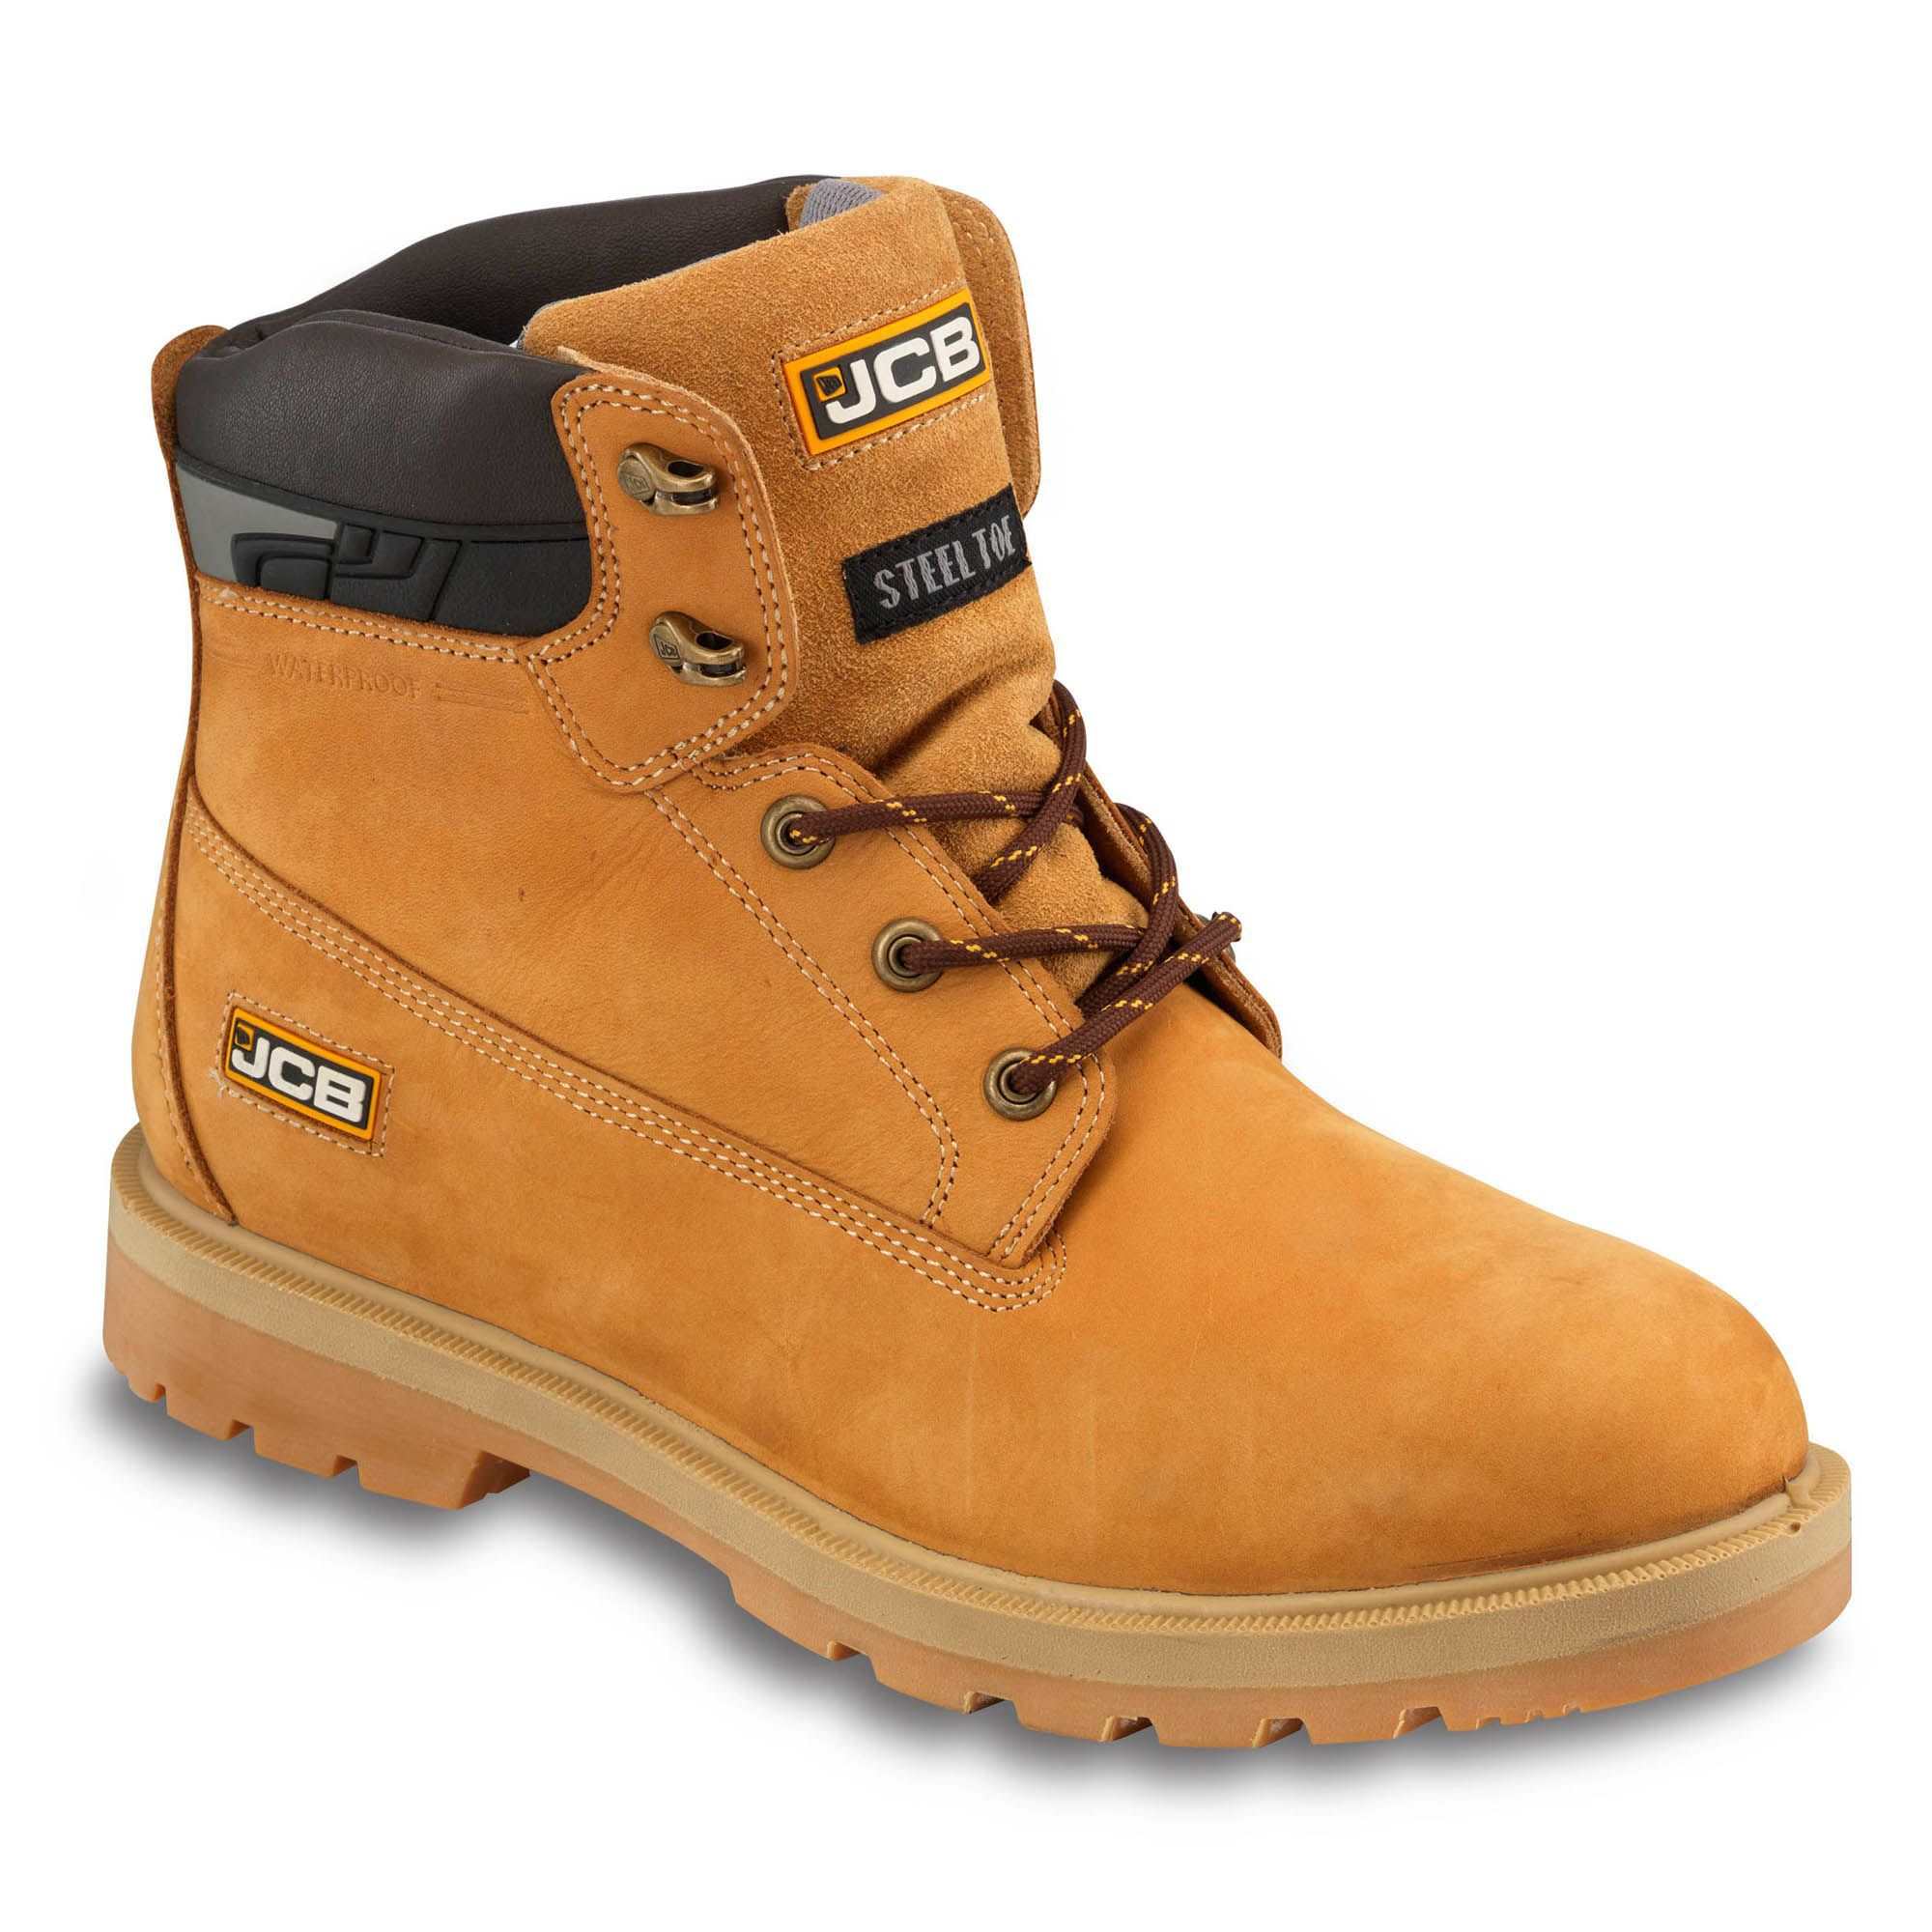 Jcb Honey Protector Safety Boots, Size 8